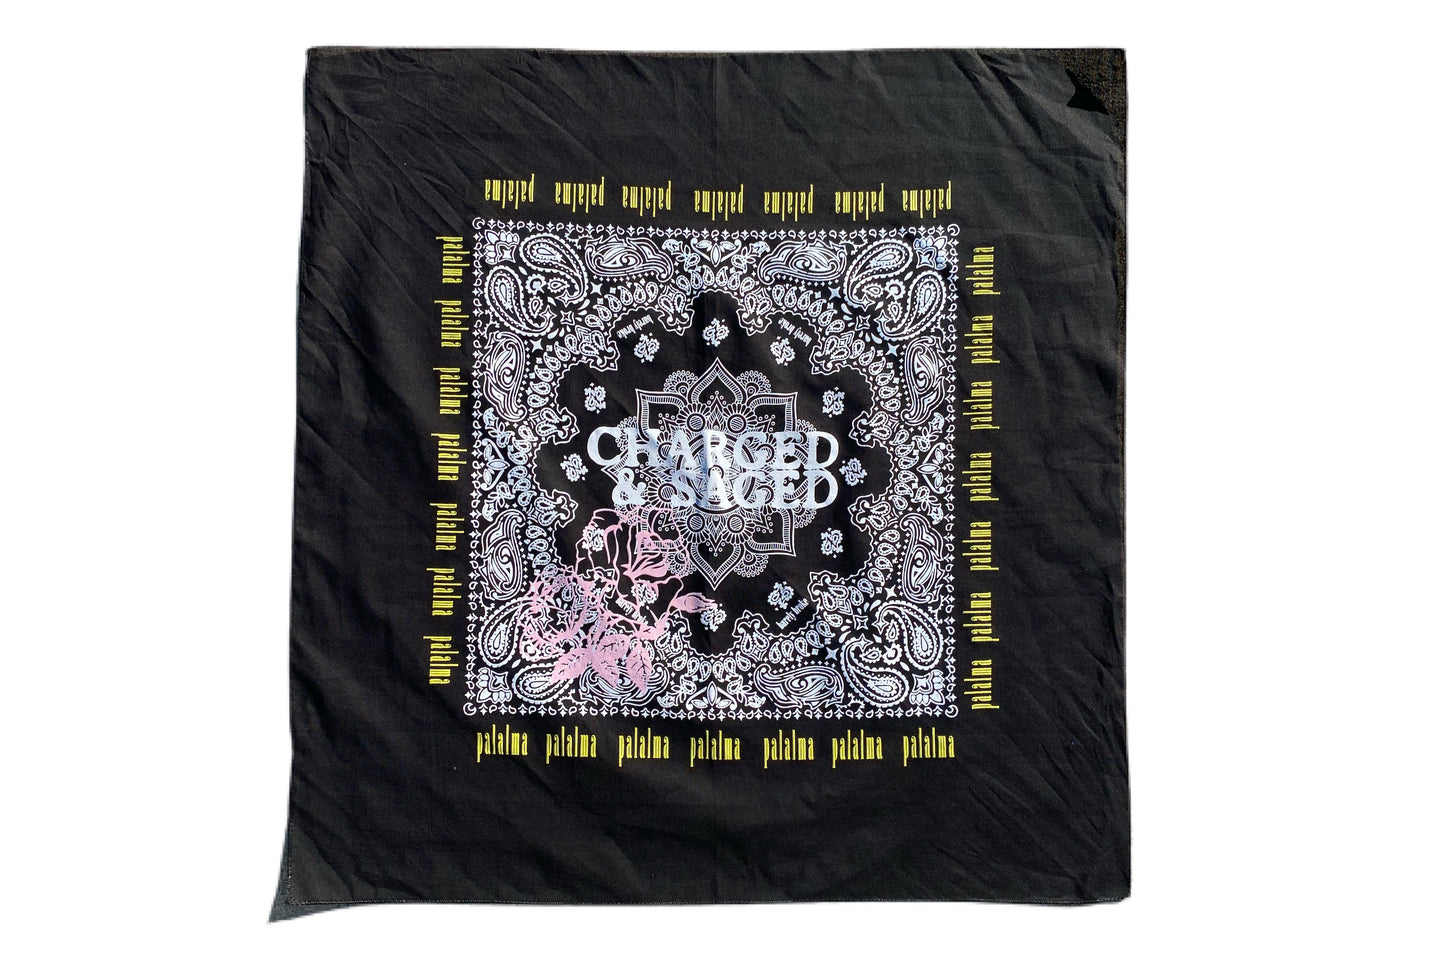 Charged And Saged Black Bandana Crown ( Palalma Collaboration )